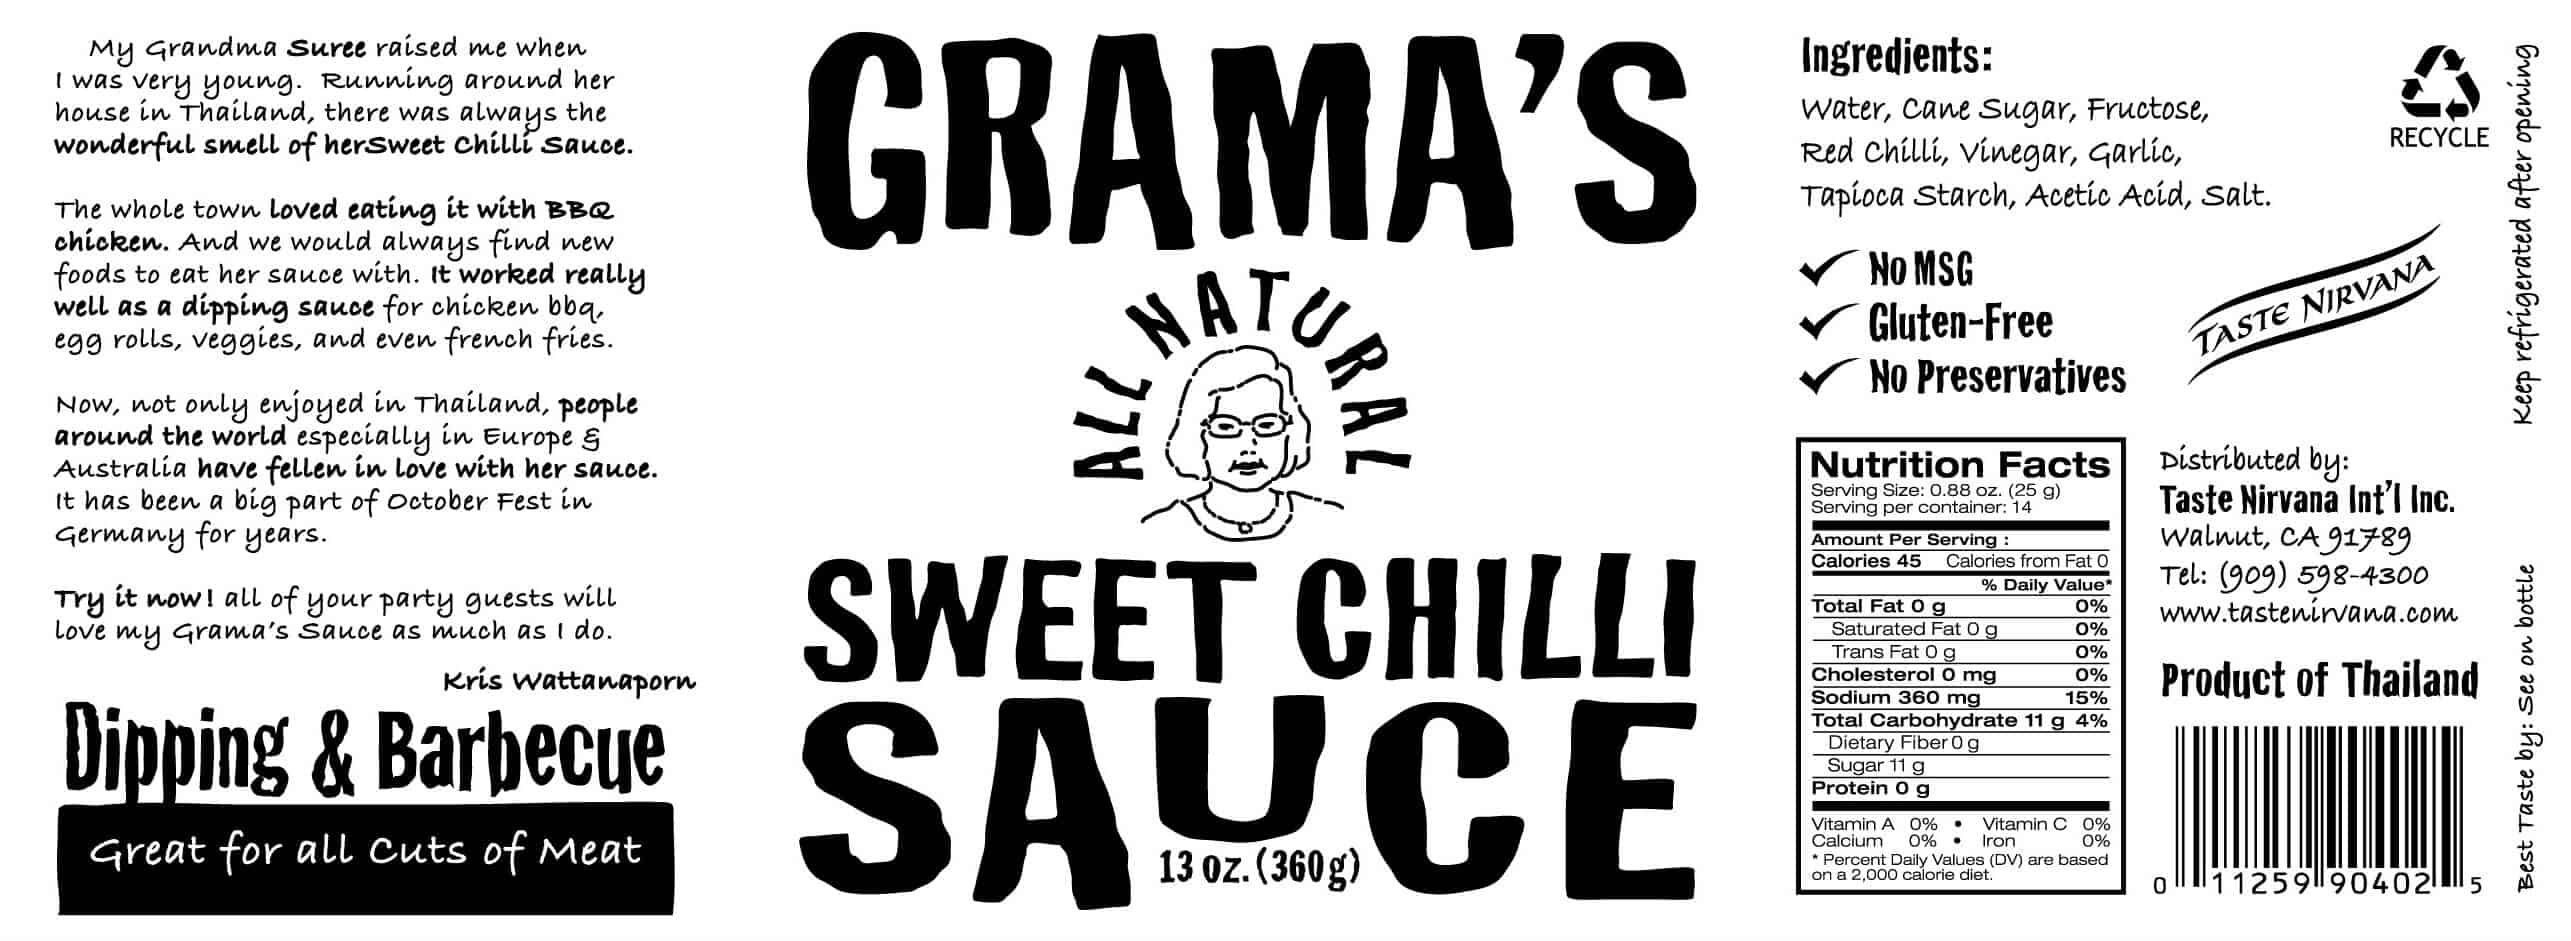 Grama's All Natural Sweet Chili Sauce (1 bottle)